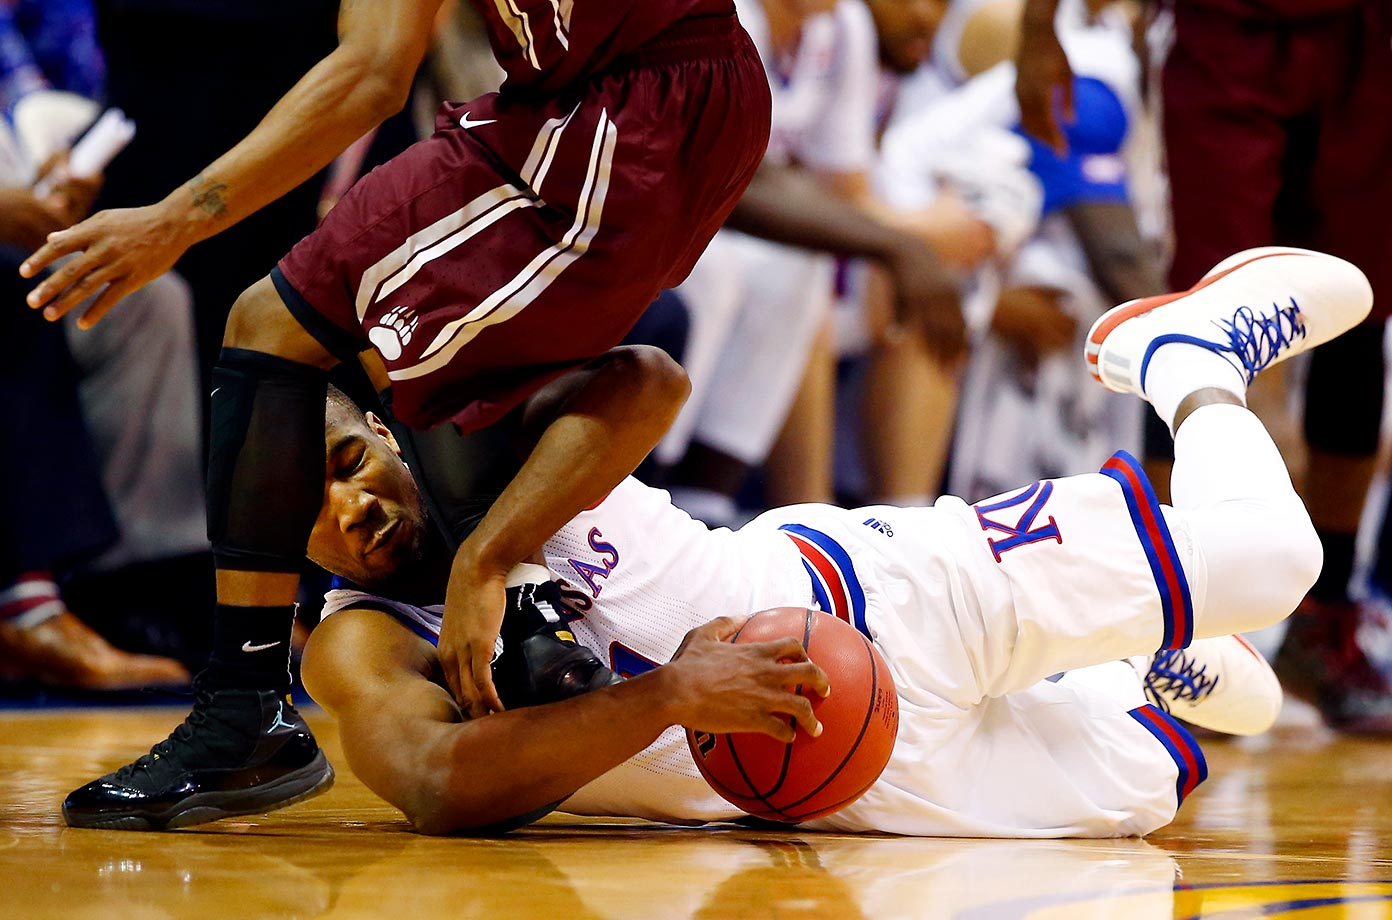 Wayne Selden Jr. of the Kansas Jayhawks dives for a loose ball against the Montana Grizzlies.